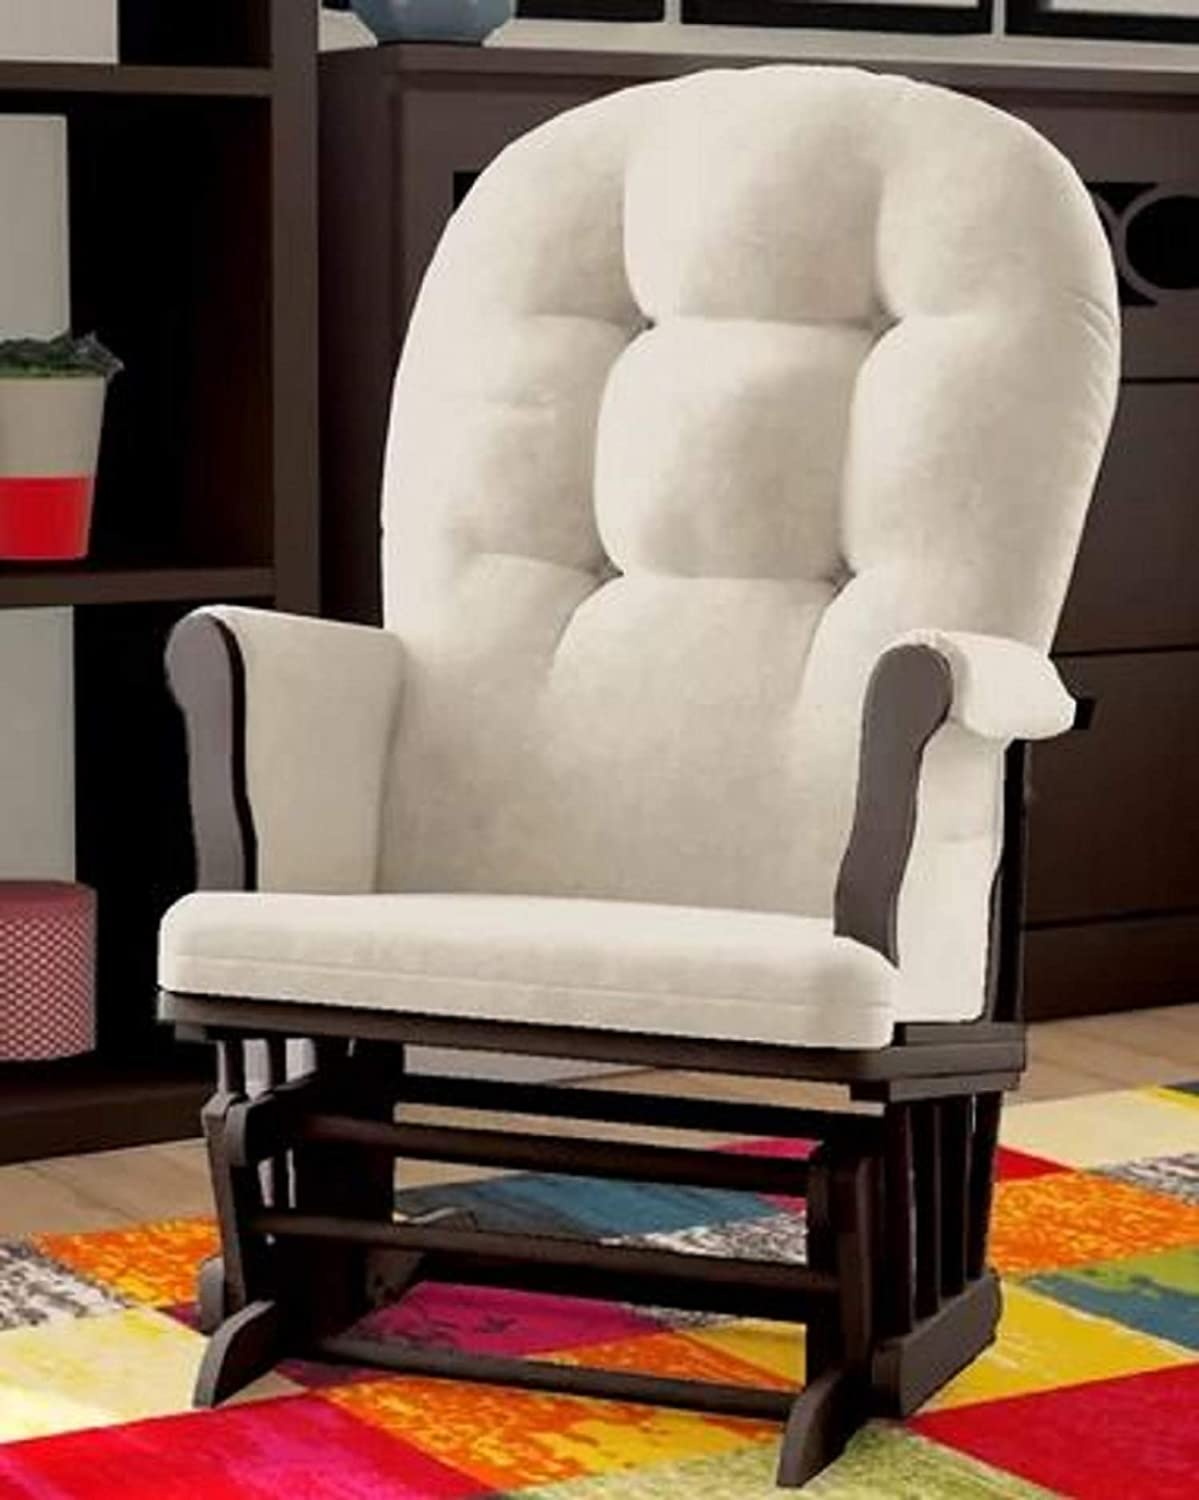 Nursery Glider Chair Crafted from Solid Beech Wood Removable Cotton Upholstered Cushions Beige//Espresso Essex Gentle Gliding Motion Nursery Glider Chair